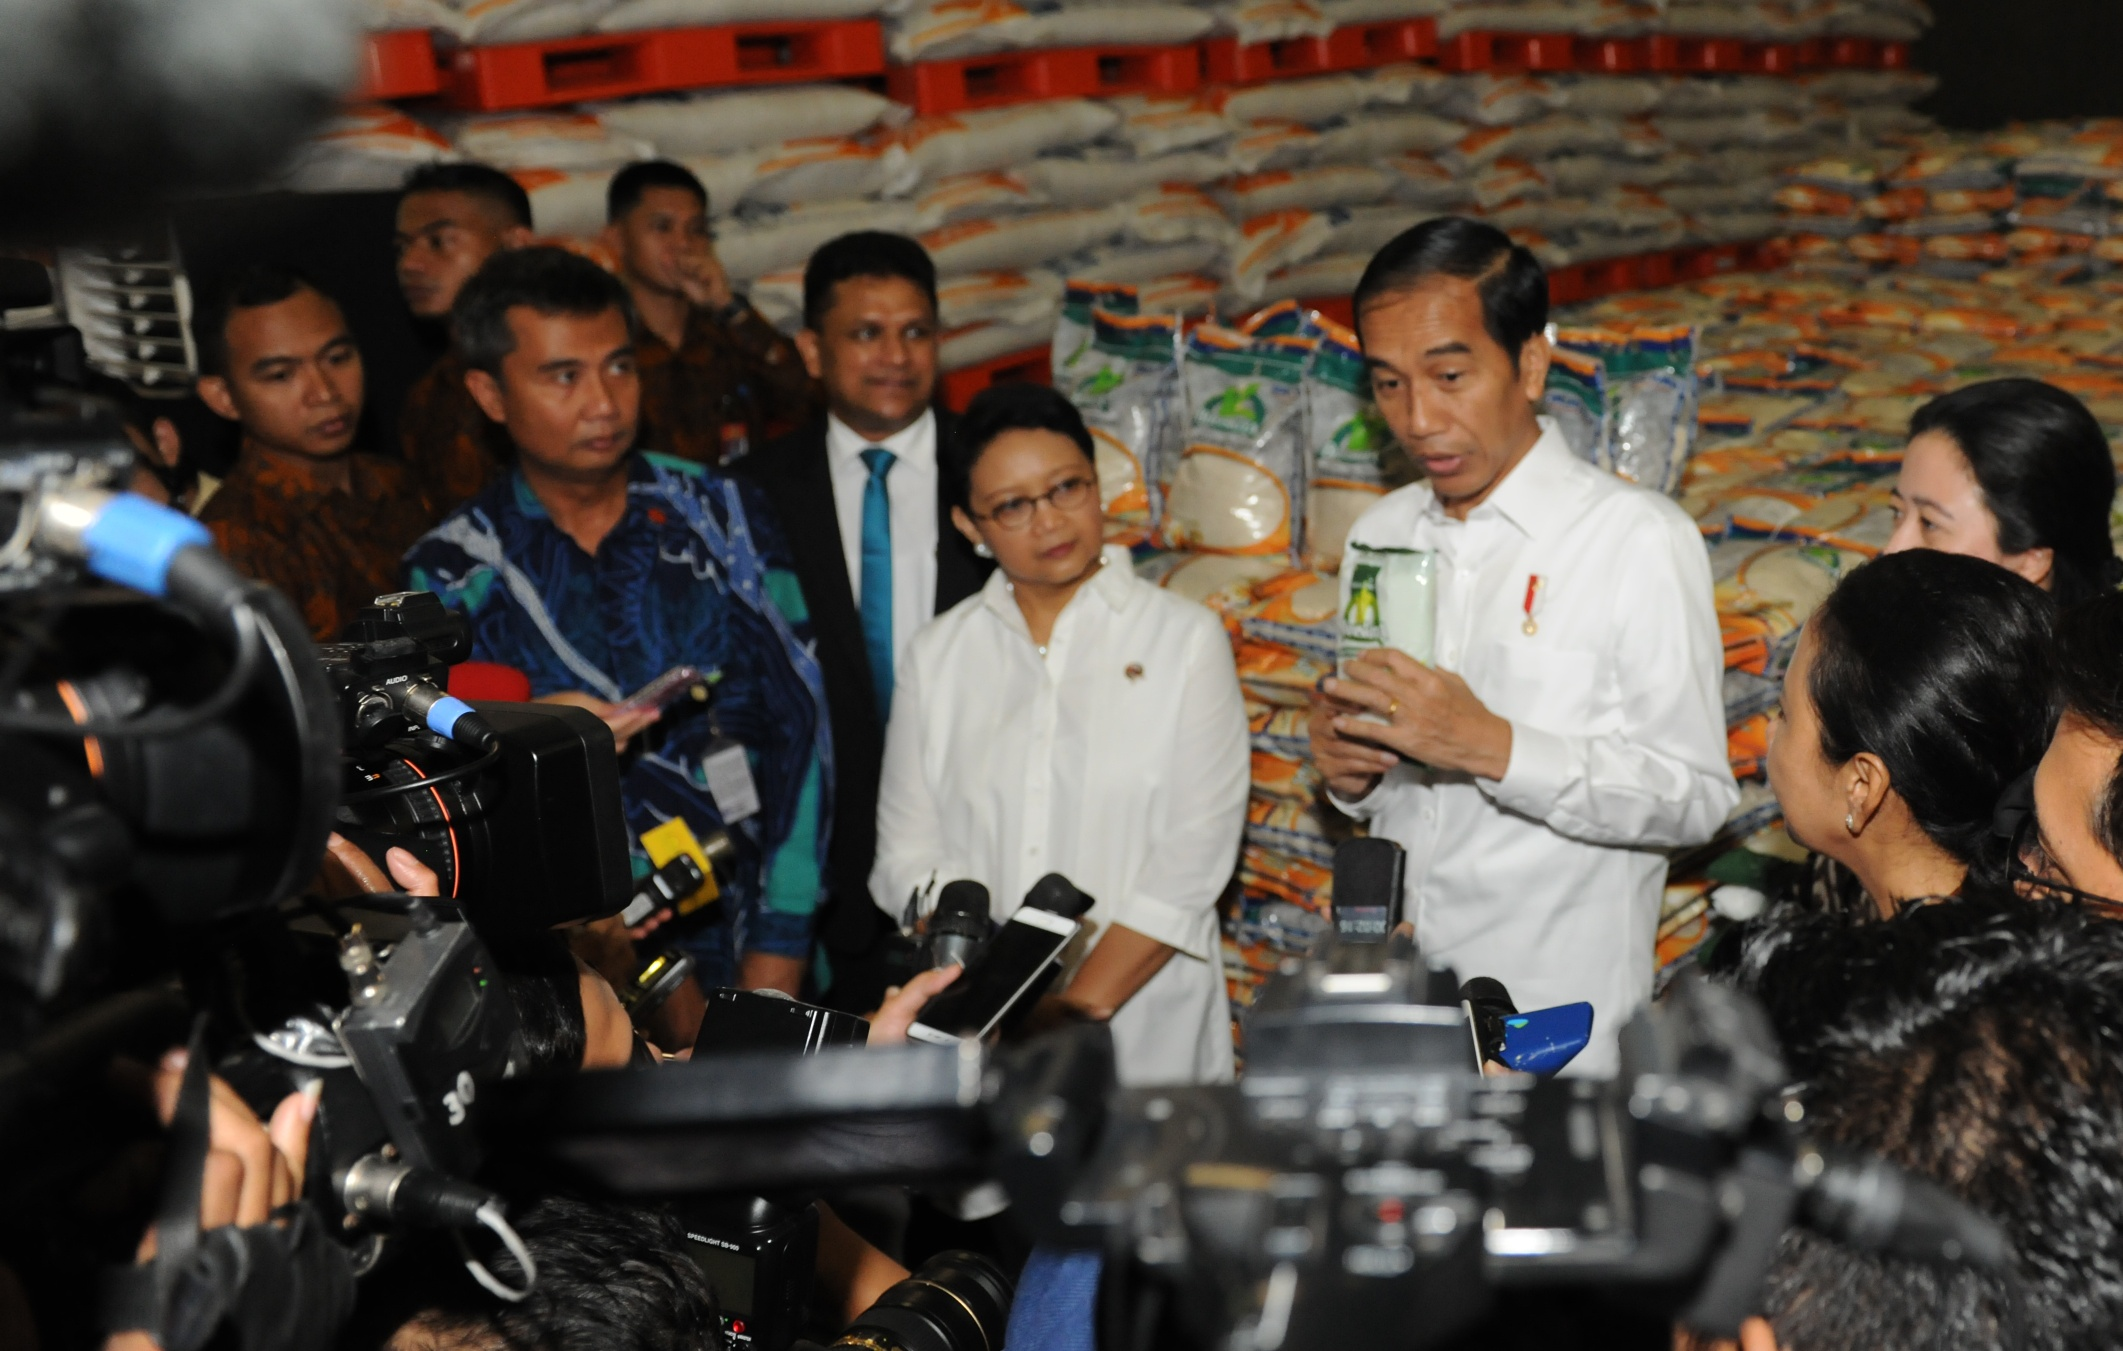 President Jokowi responds to the journalists' questions after sending off the rice donation to Sri Lanka, at Bulog Warehouse in Sunter, Kelapa Gading, Jakarta, on Tuesday (14/2) (Photo: JAY/PR)